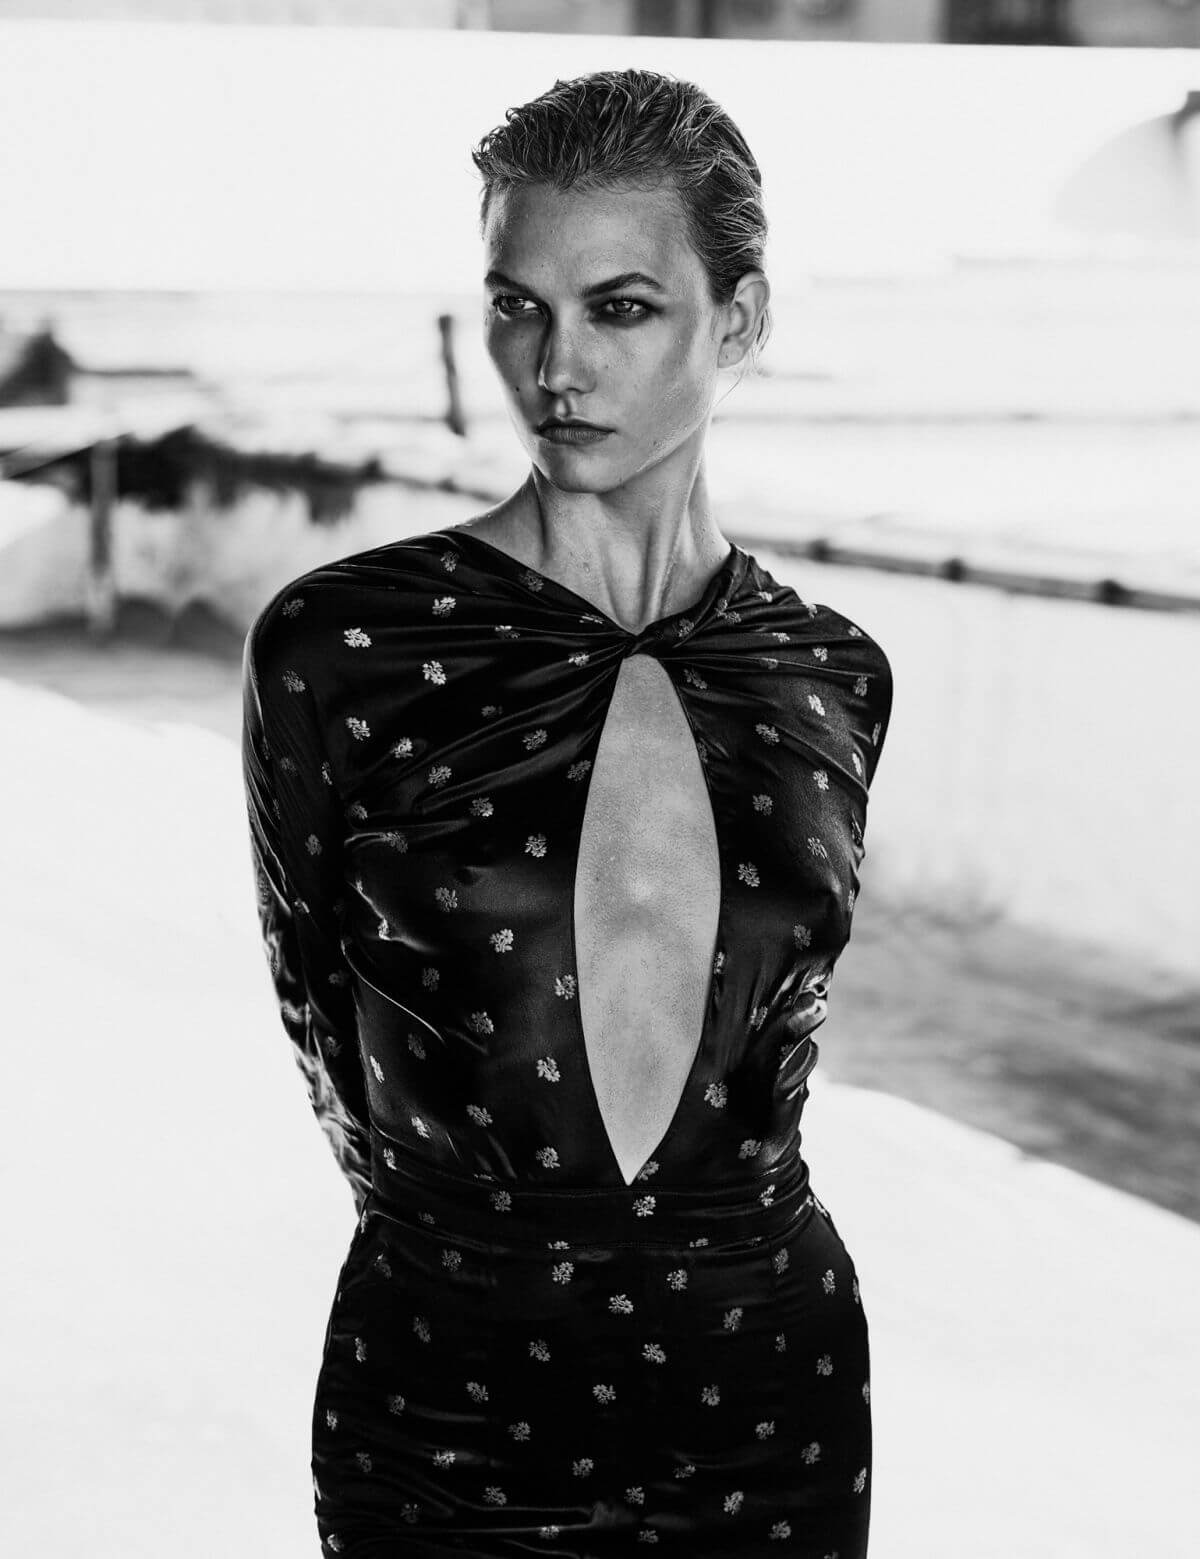 Karlie Kloss Hot Covers Vogue Mexico October 2016 Issue